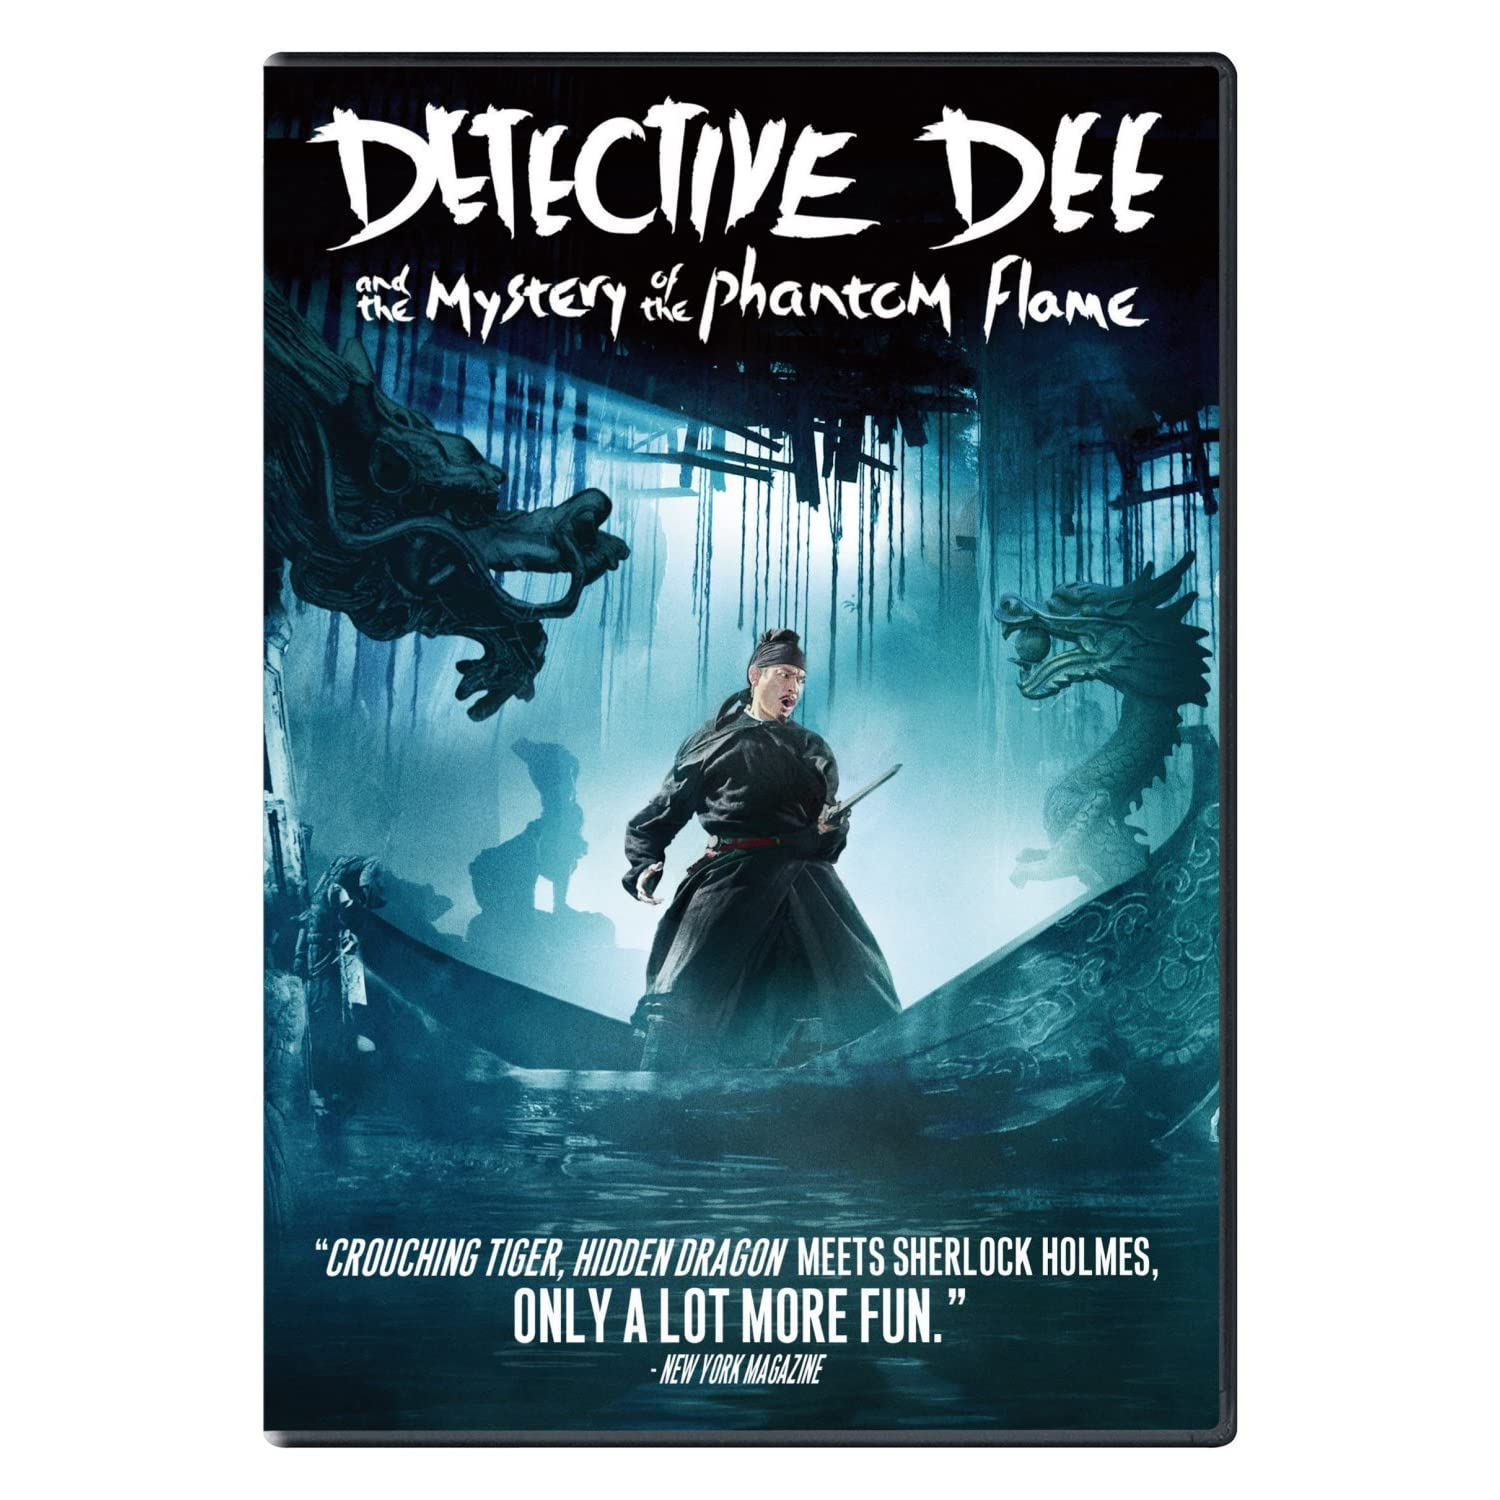 Detective Dee and the Mystery of the Phantom Flame Reviews